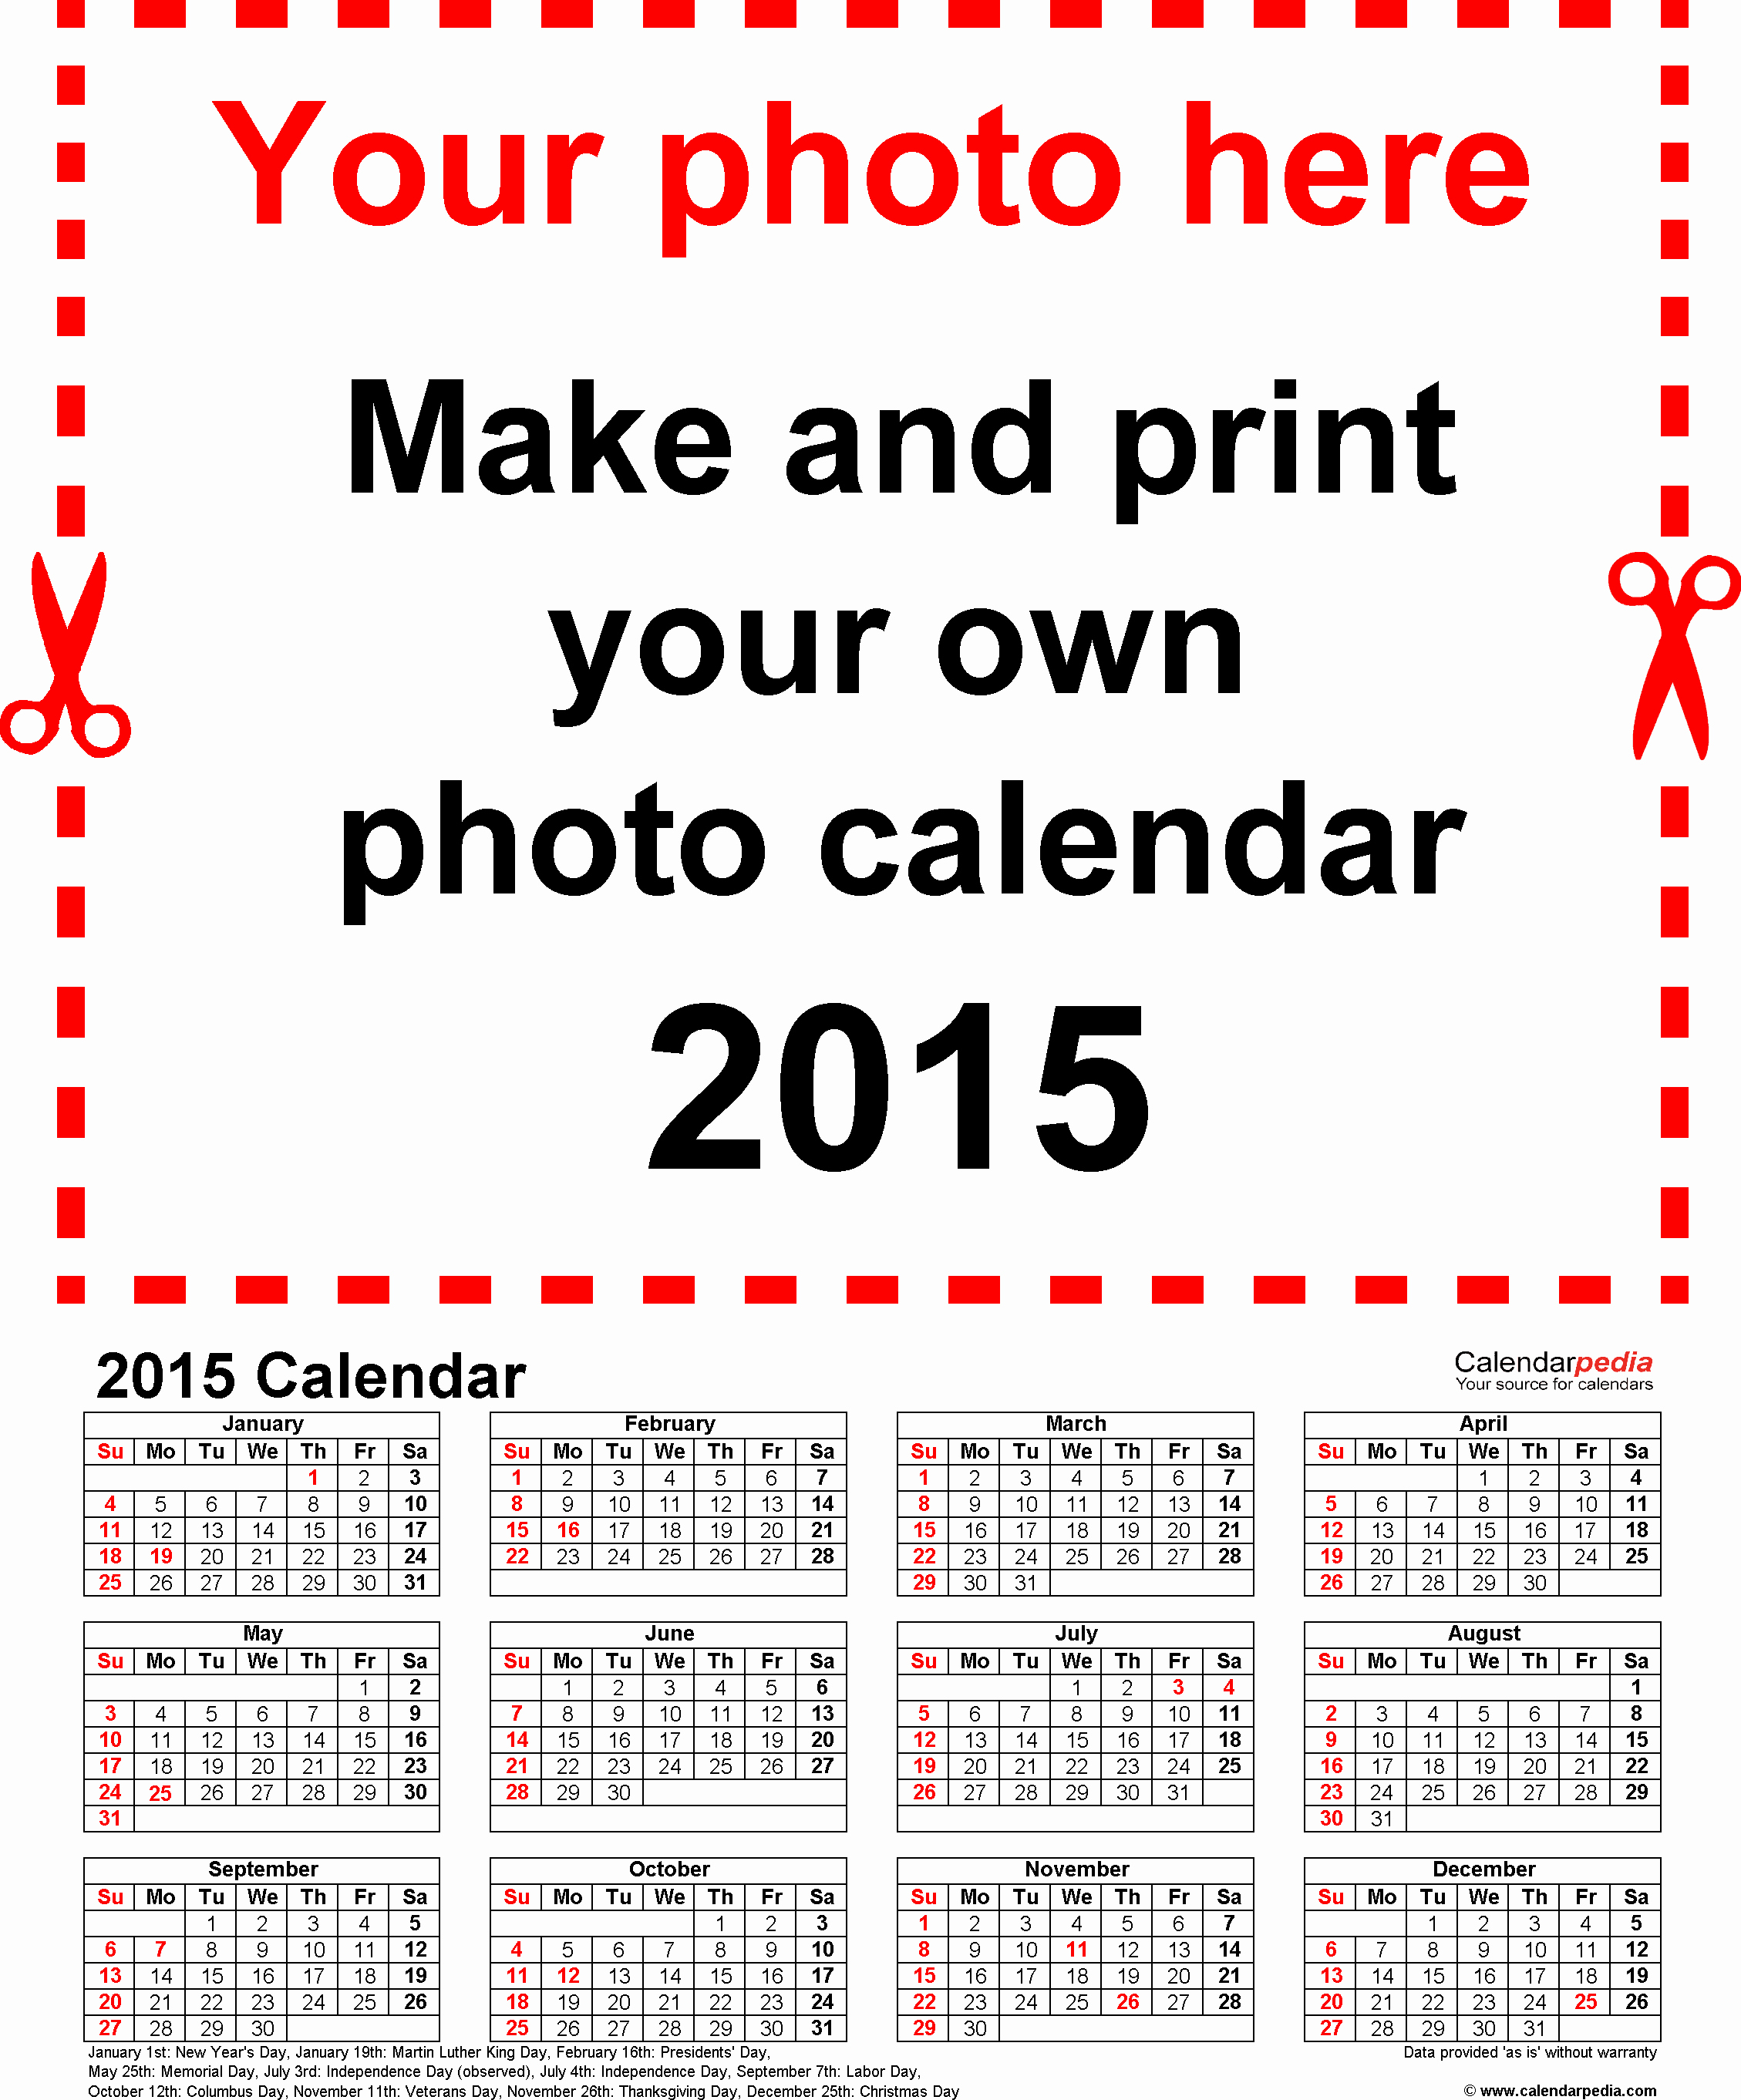 Calendar Of events Template 2015 Awesome Printable Yearly Calendar 2015 – 2017 Printable Calendar